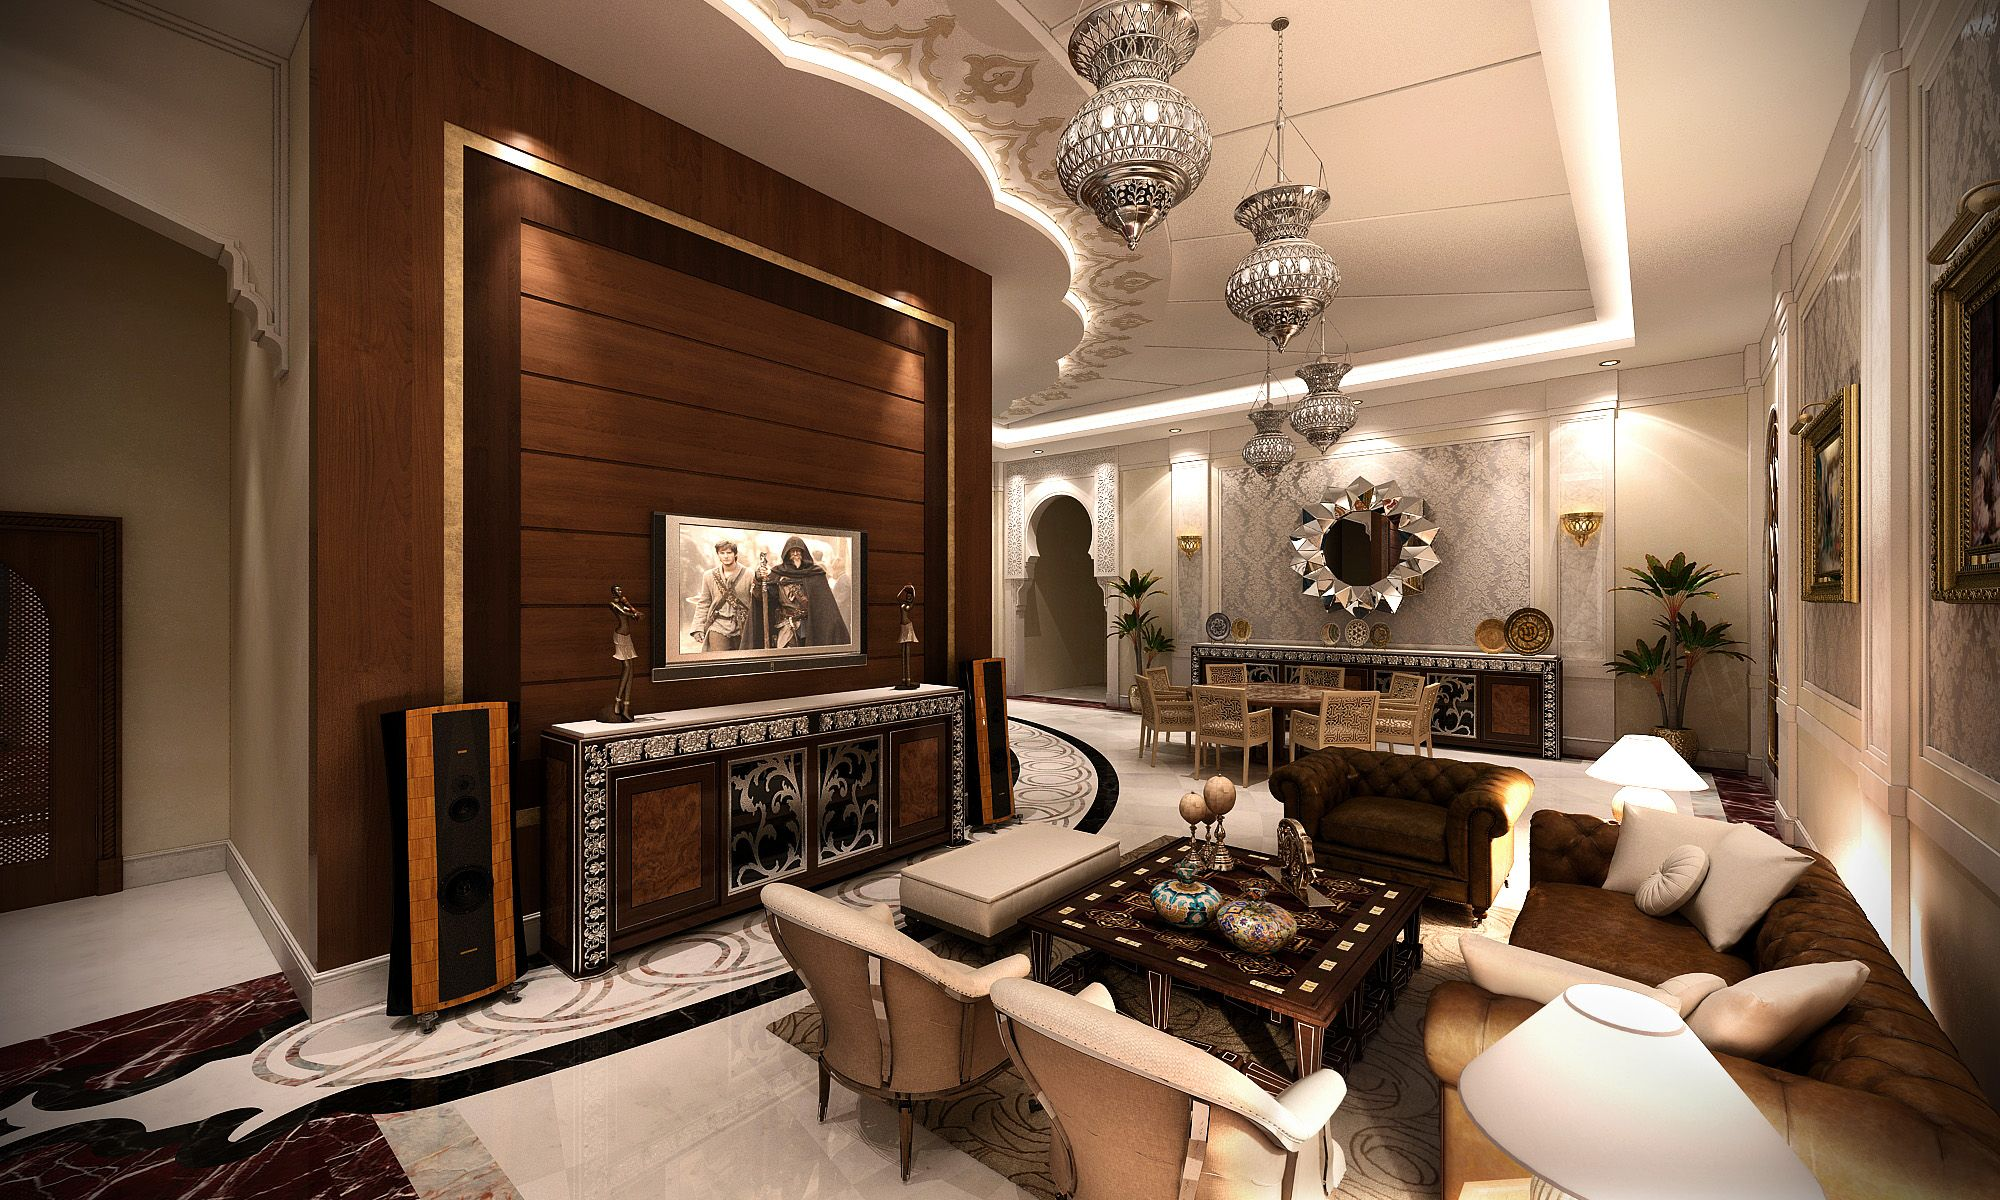 The New Moroccan Style Designed By Moroccan Mood For Decor Moroccan Style Home Decor Decor